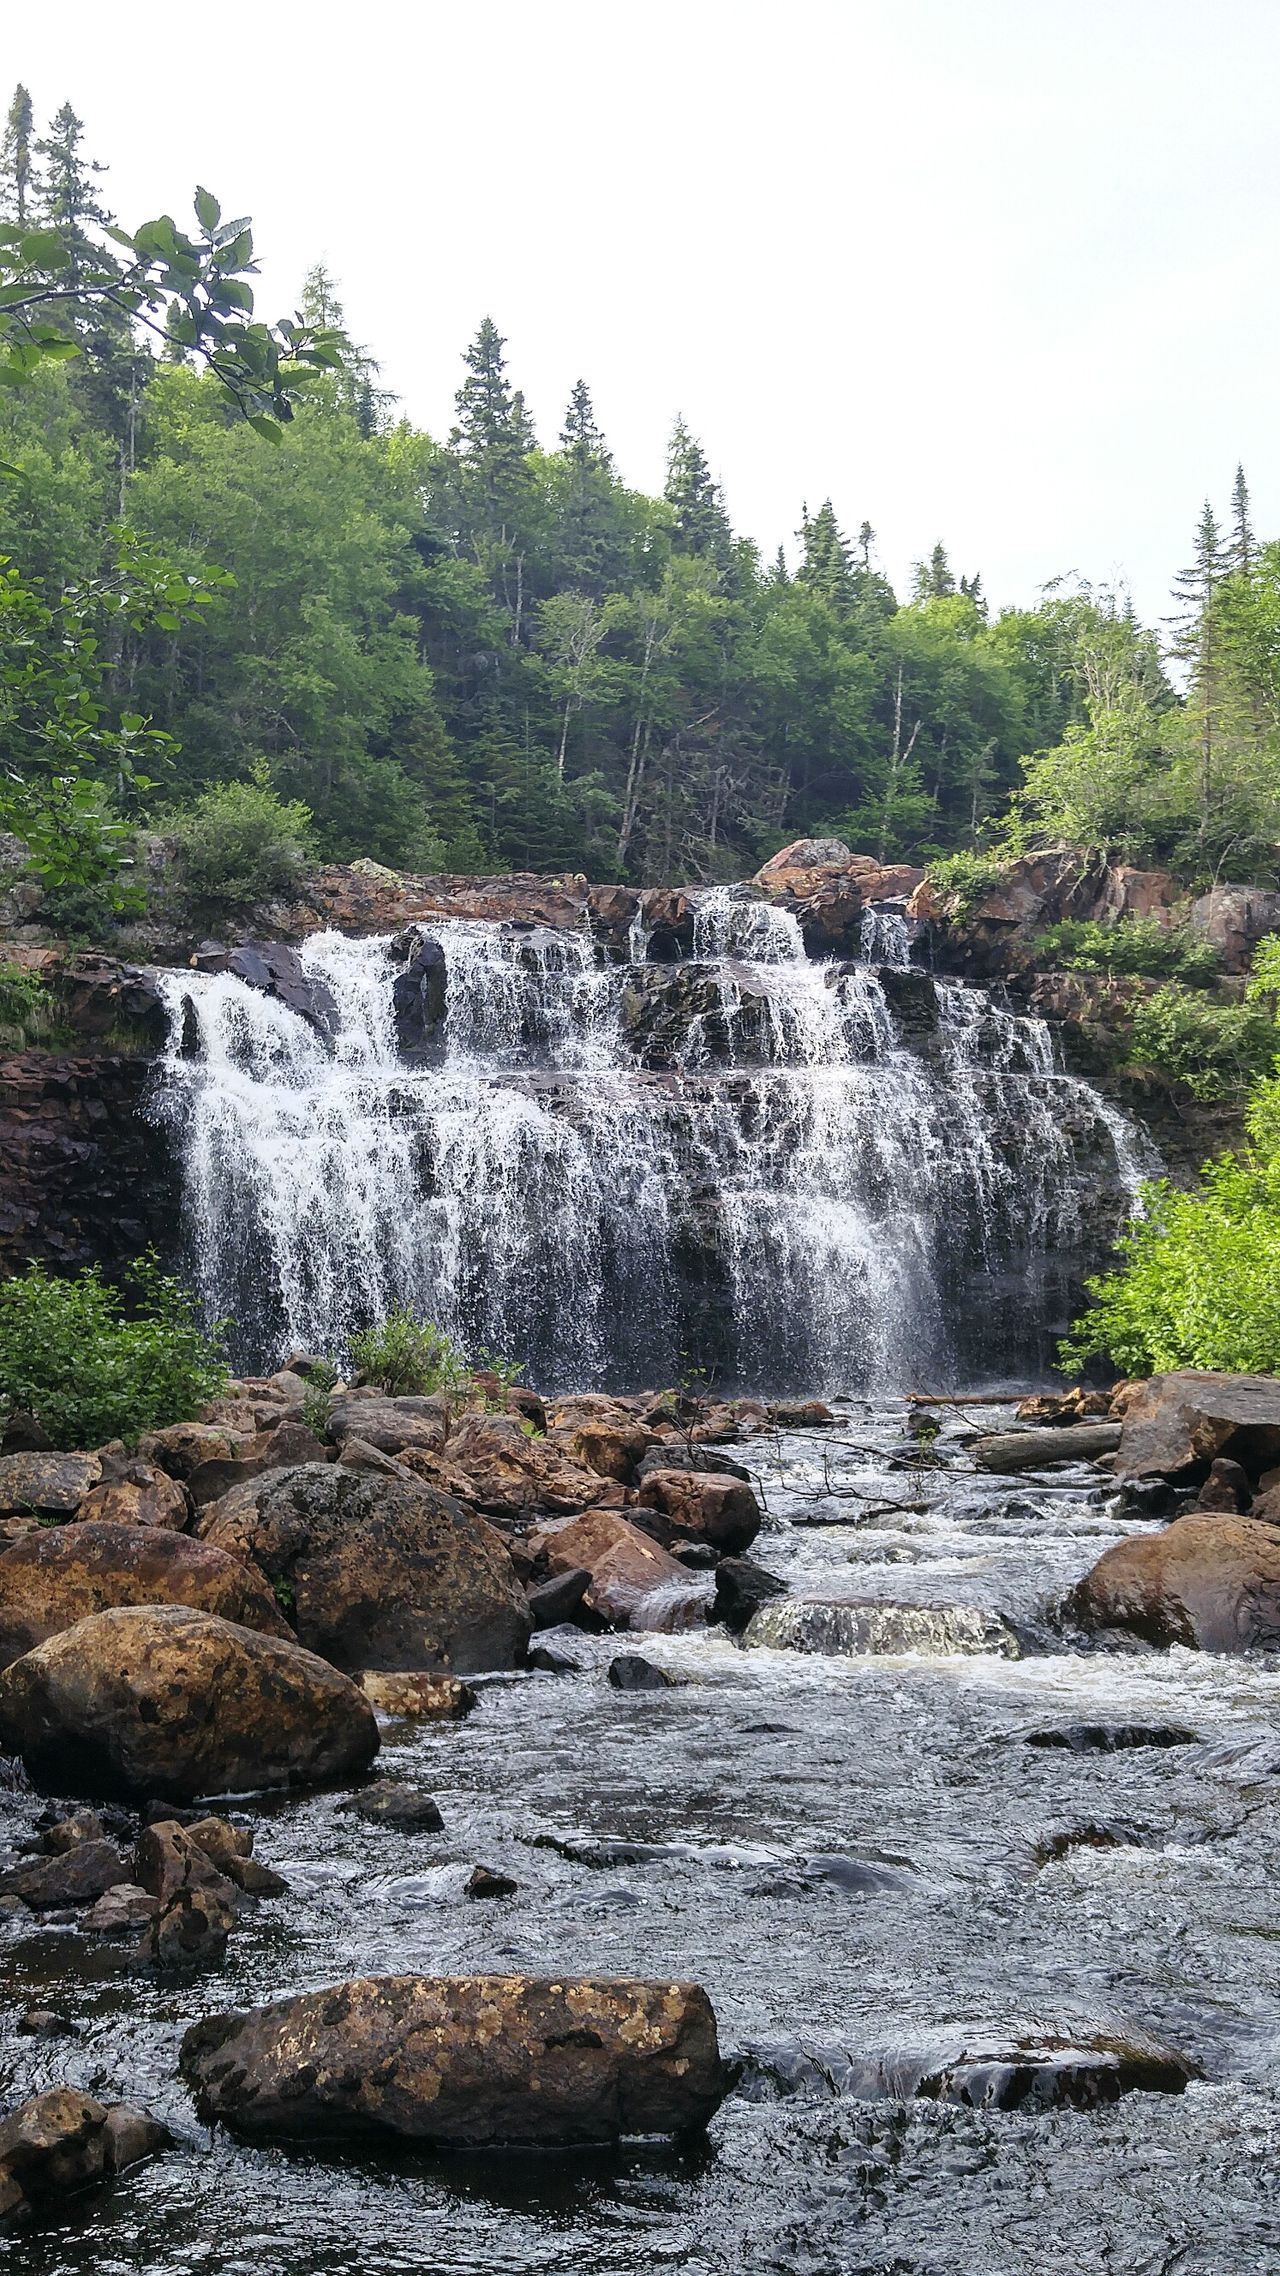 Neys Marathon, Ont Ontario Ontario, Canada Scenics Beauty In Nature Water Outdoors Hiking Hikingphotography Nature Magical Mother Nature Crystal Clear Waters Rocky Waterfall Water Running Over Rocks Water Rush In Awe Captivating